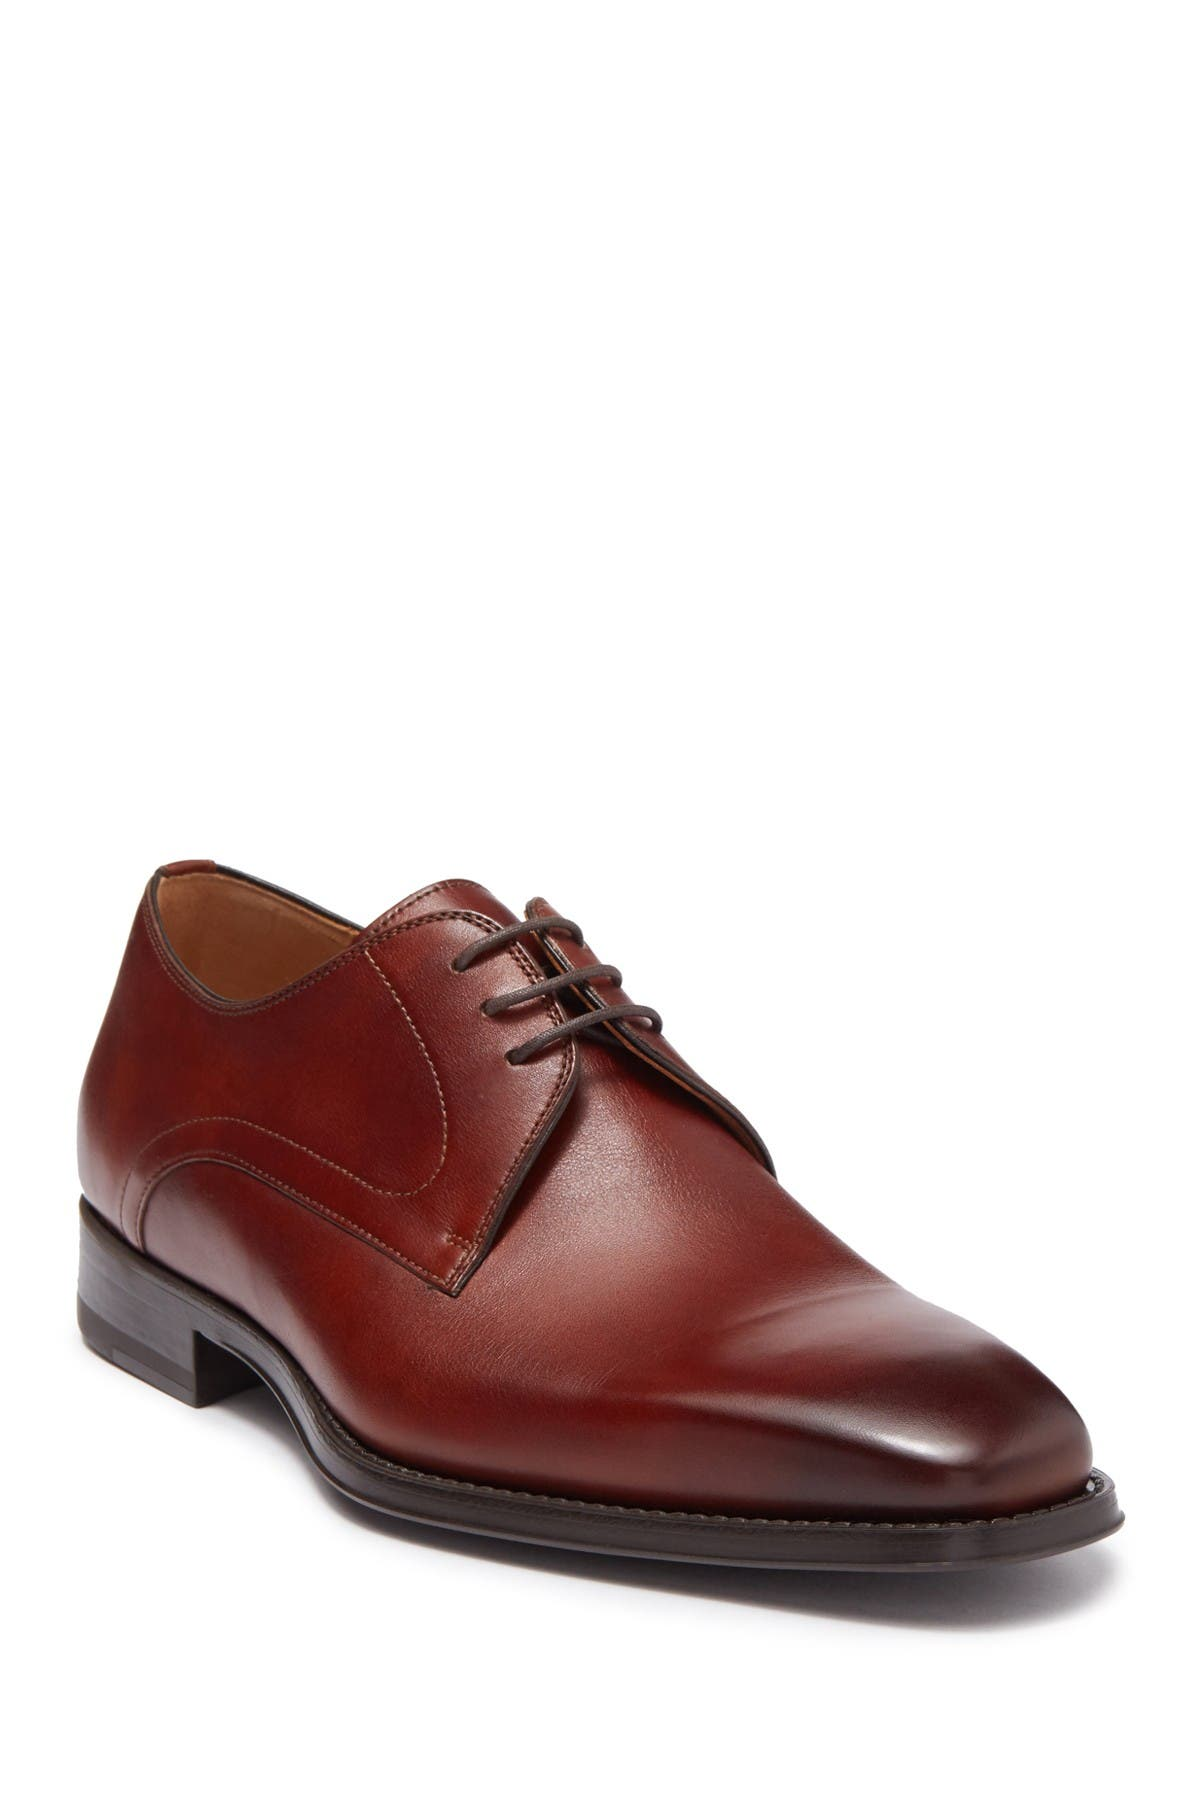 Image of Magnanni Mario Leather Derby